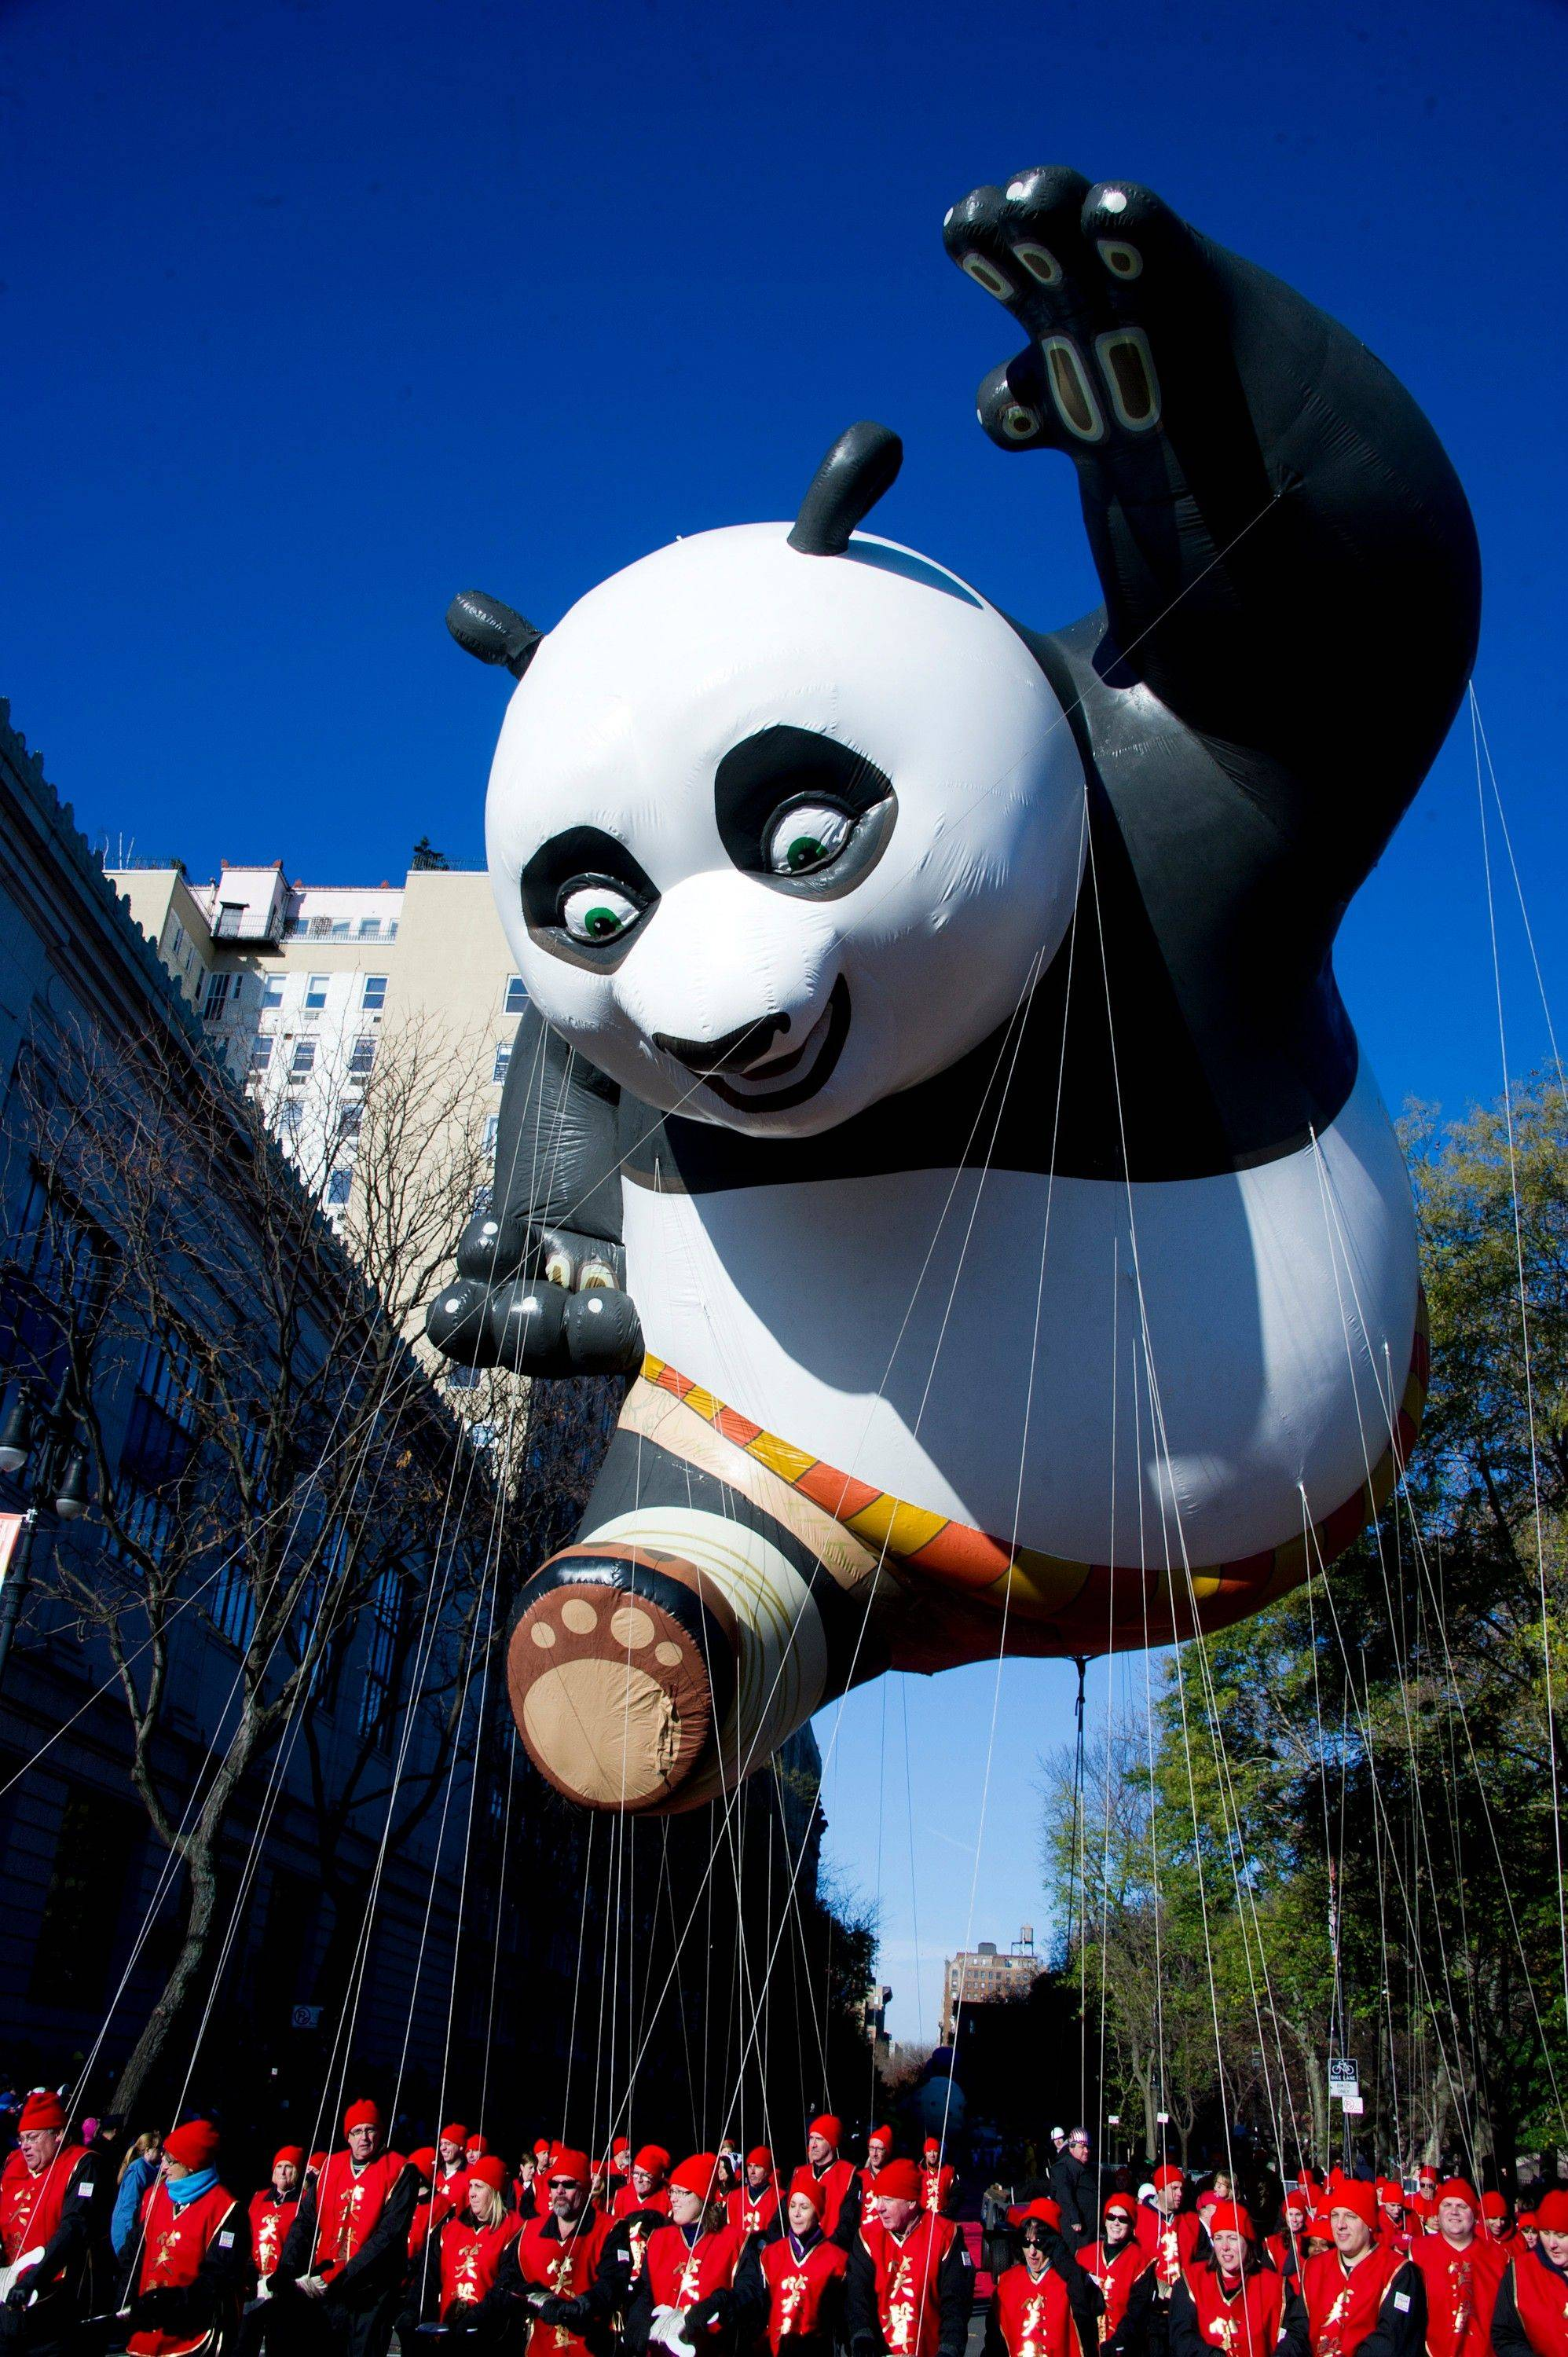 The Kung Fu Panda balloon floats in the Macy's Thanksgiving Day Parade in New York, Thursday, Nov. 24, 2011. A jetpack-wearing monkey and a freakish creation from filmmaker Tim Burton are two of the big new balloons that will make their inaugural appearances in front of millions of people at this year's parade.